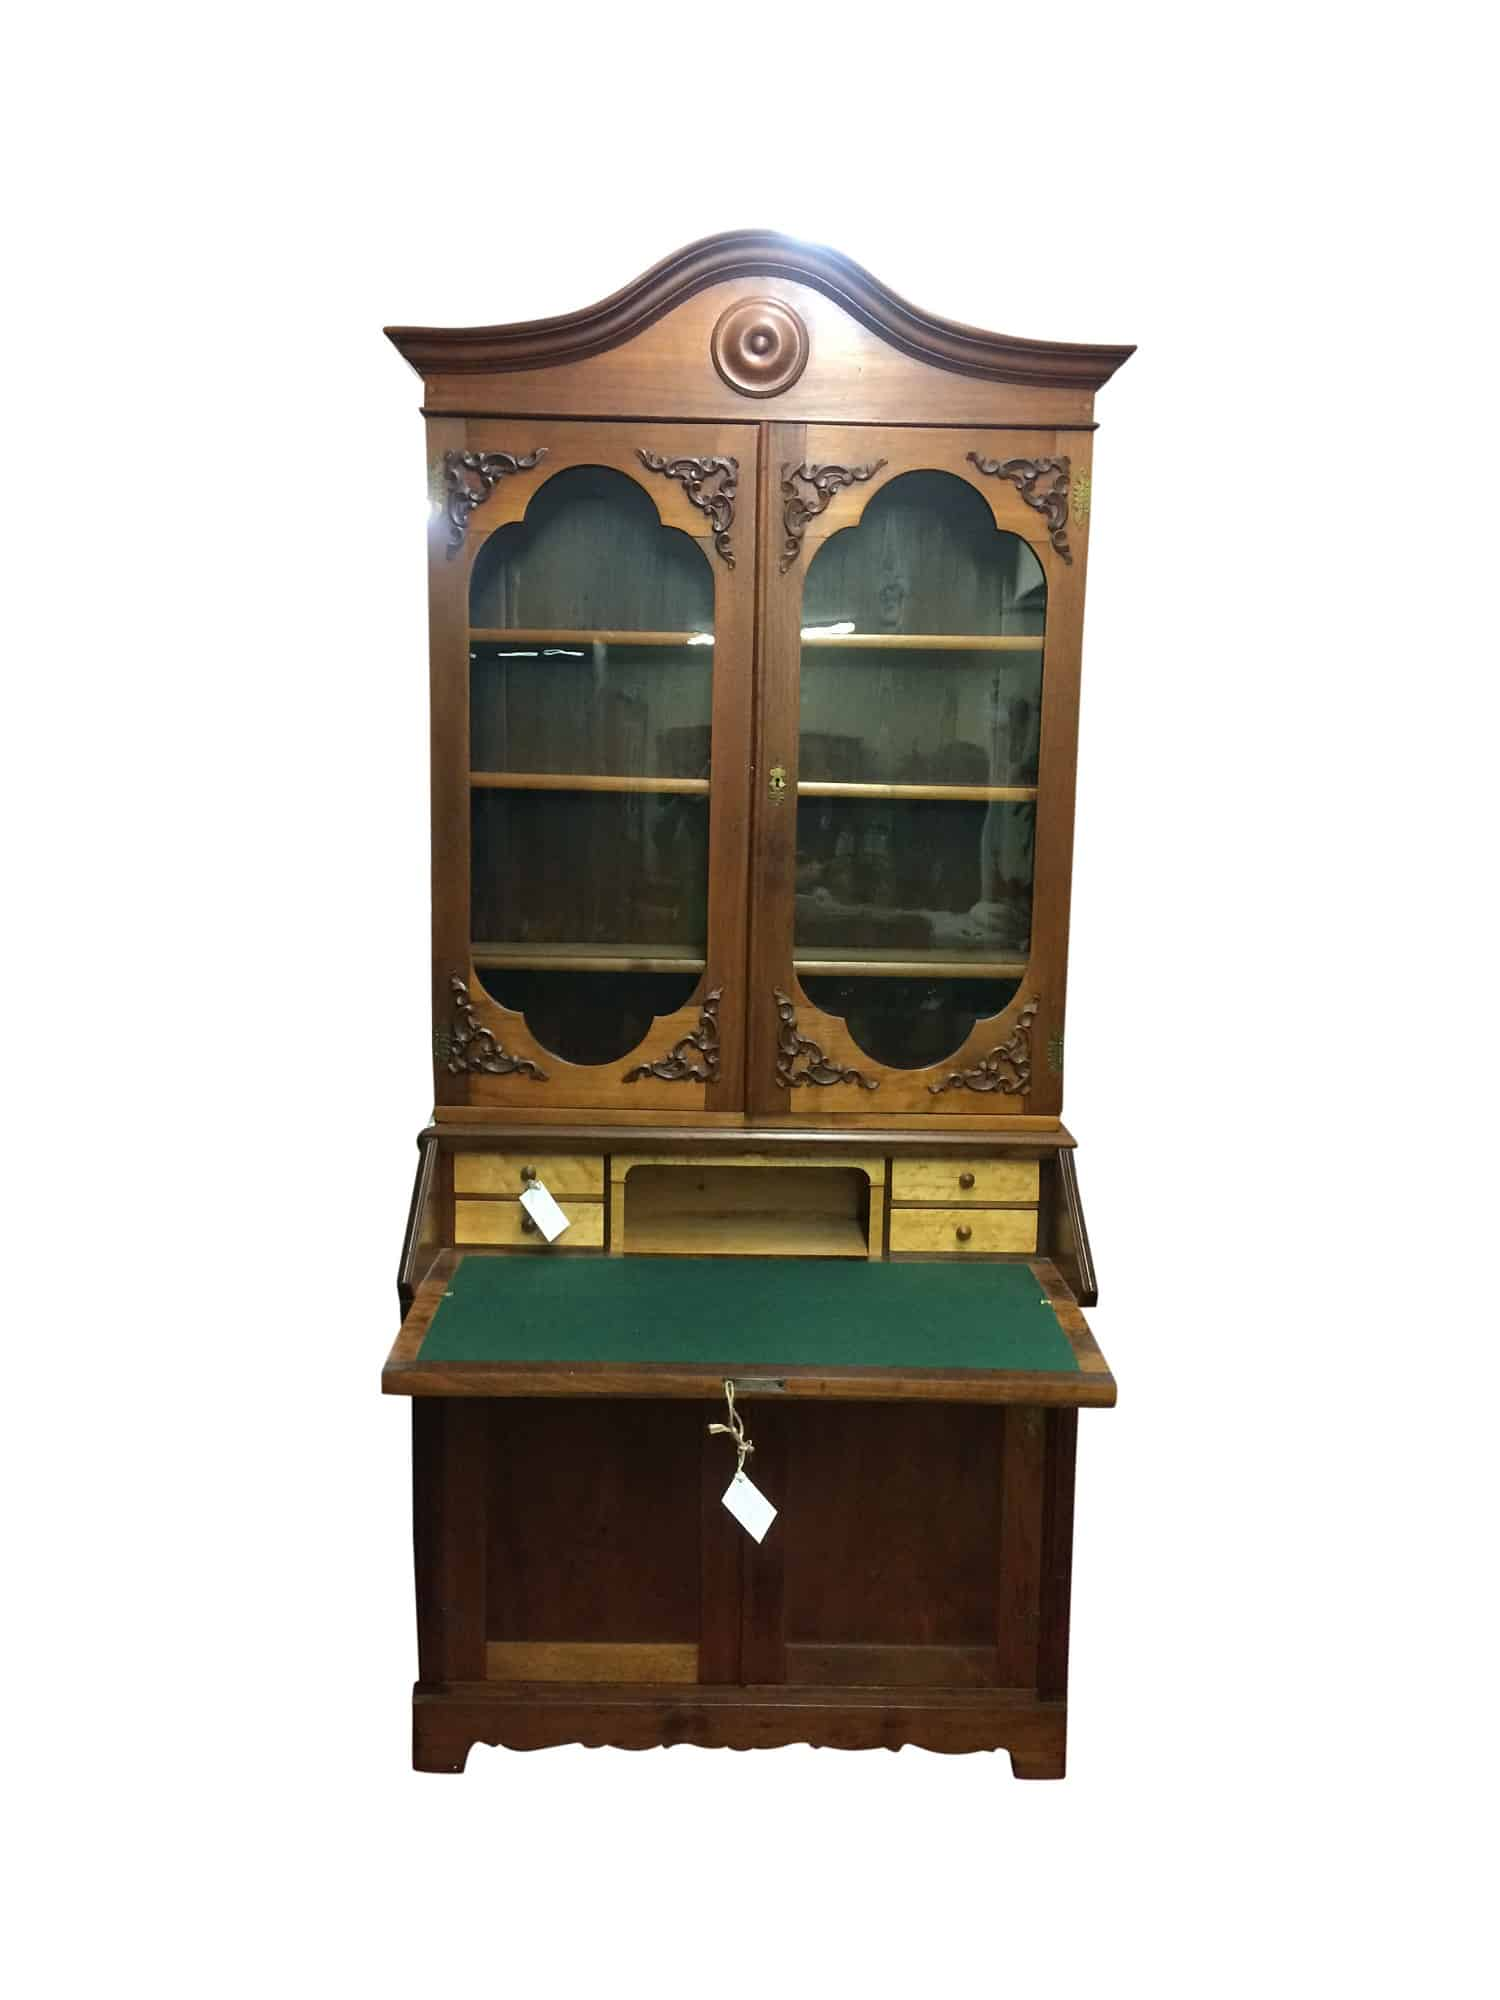 Victorian Desk - Victorian Desk - Antique Secretary Desk ⋆ Bohemian's